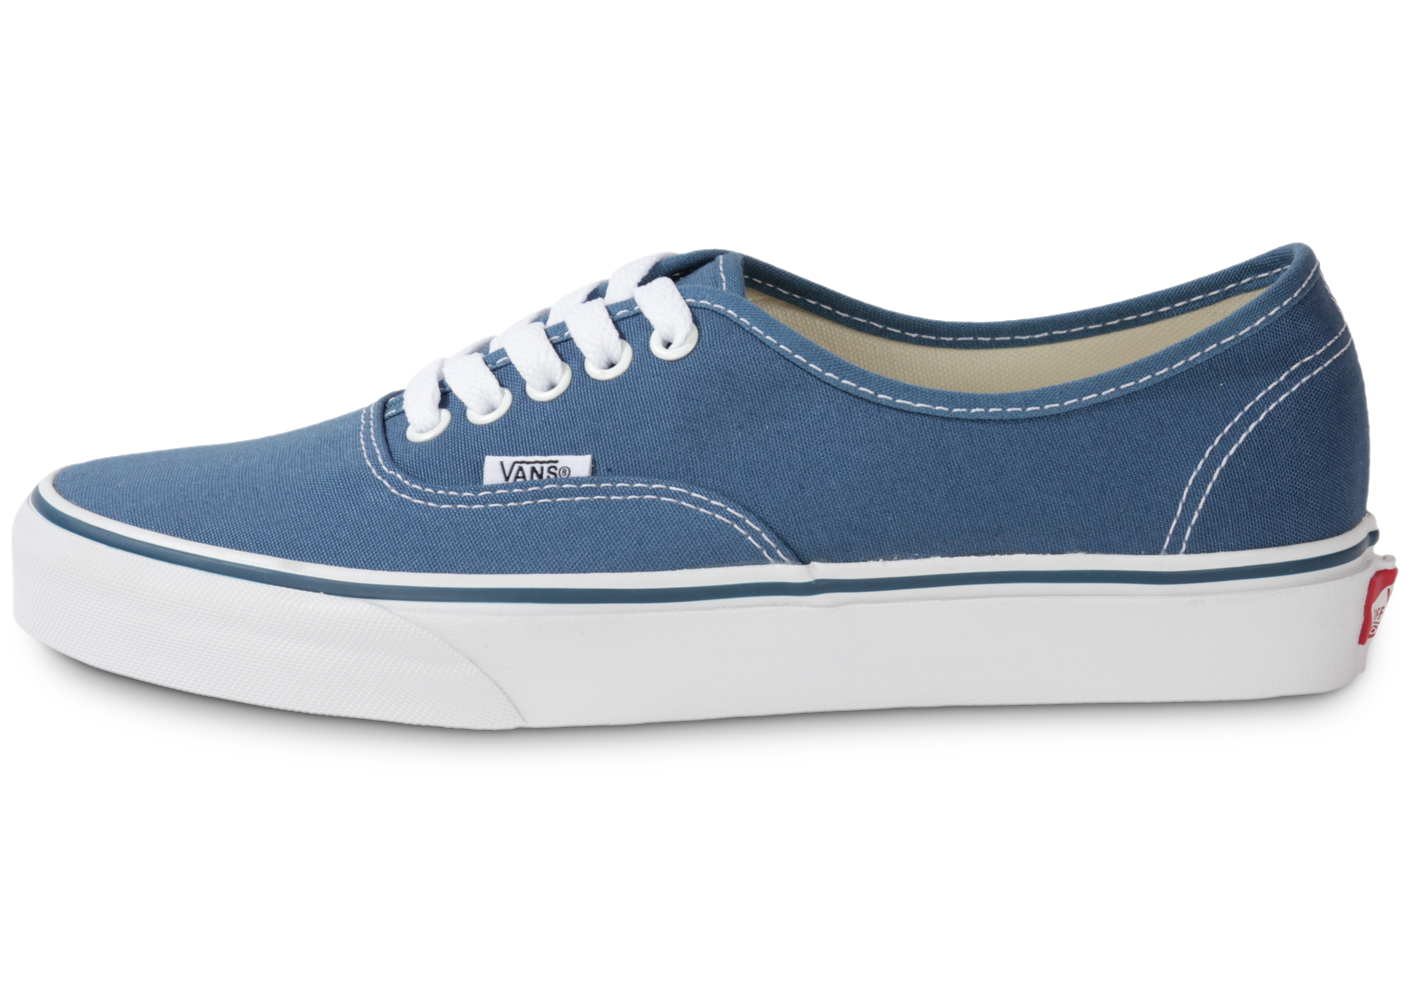 Vans Homme Authentic Bleu Skate